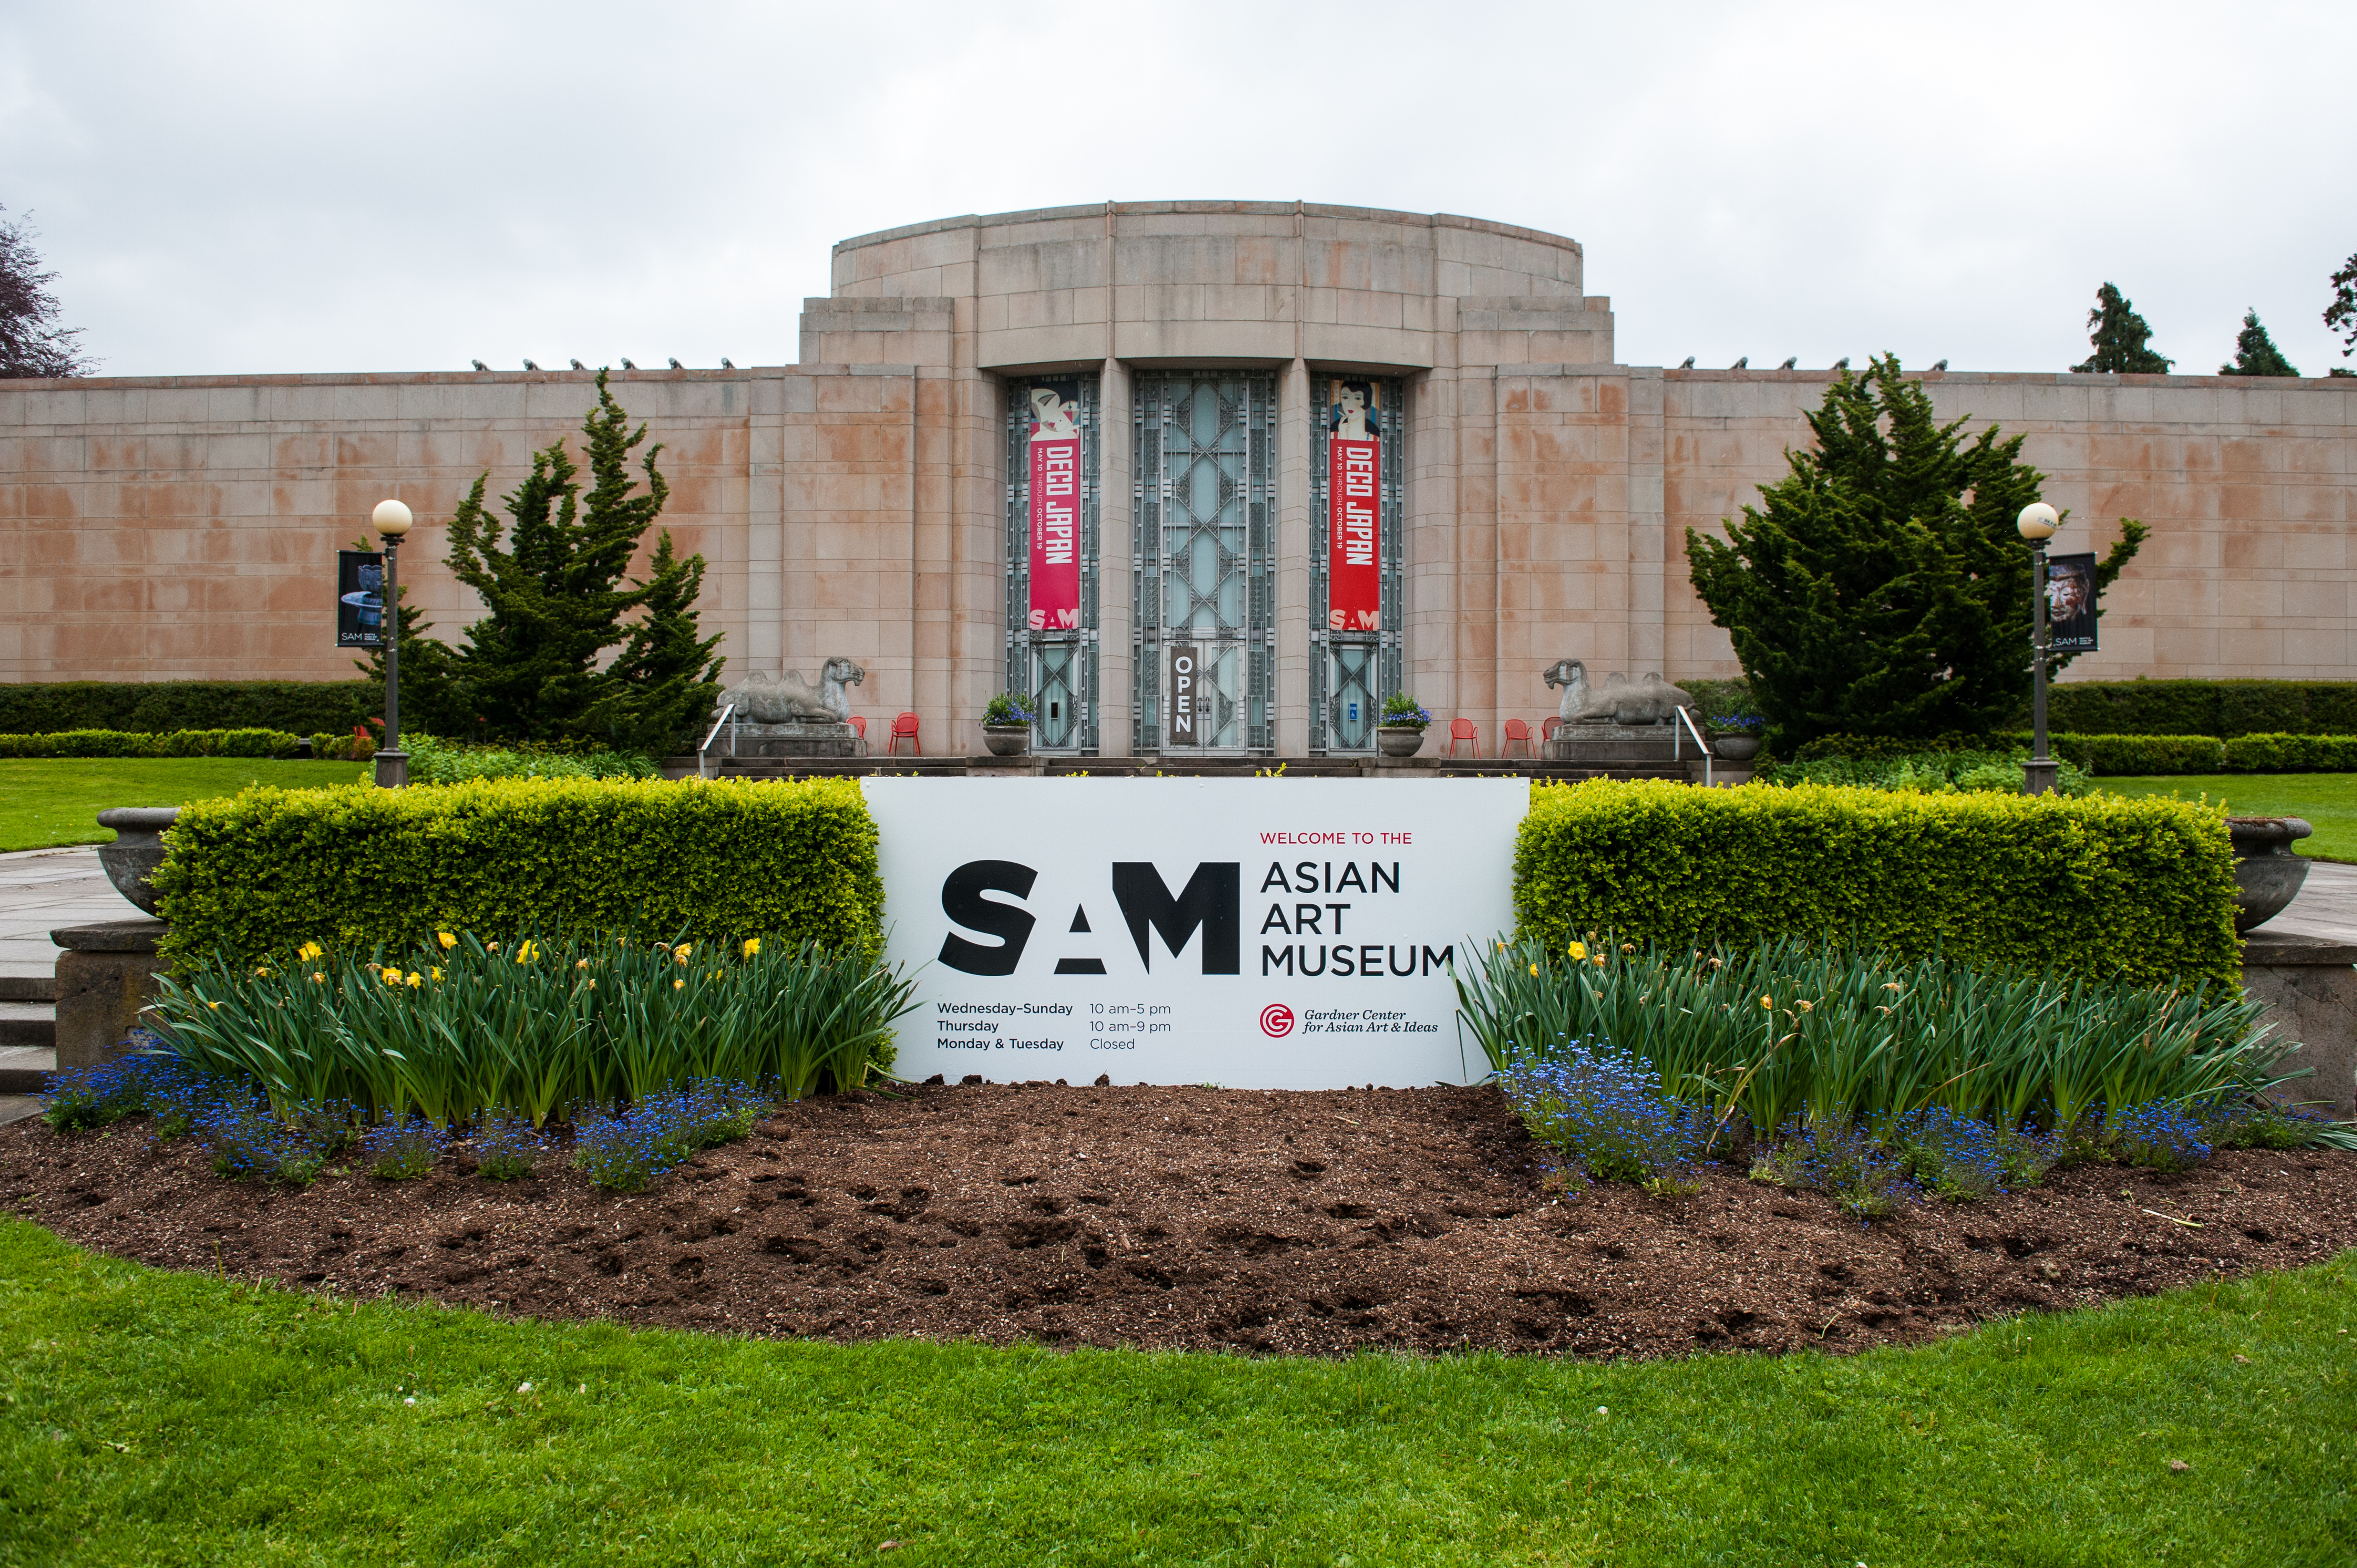 """A stone, Art Deco building with a central, rounded bay with three vertical stained-glass windows. There's landscaping in the front around a sign that says """"SAM ASIAN ART MUSEUM."""""""